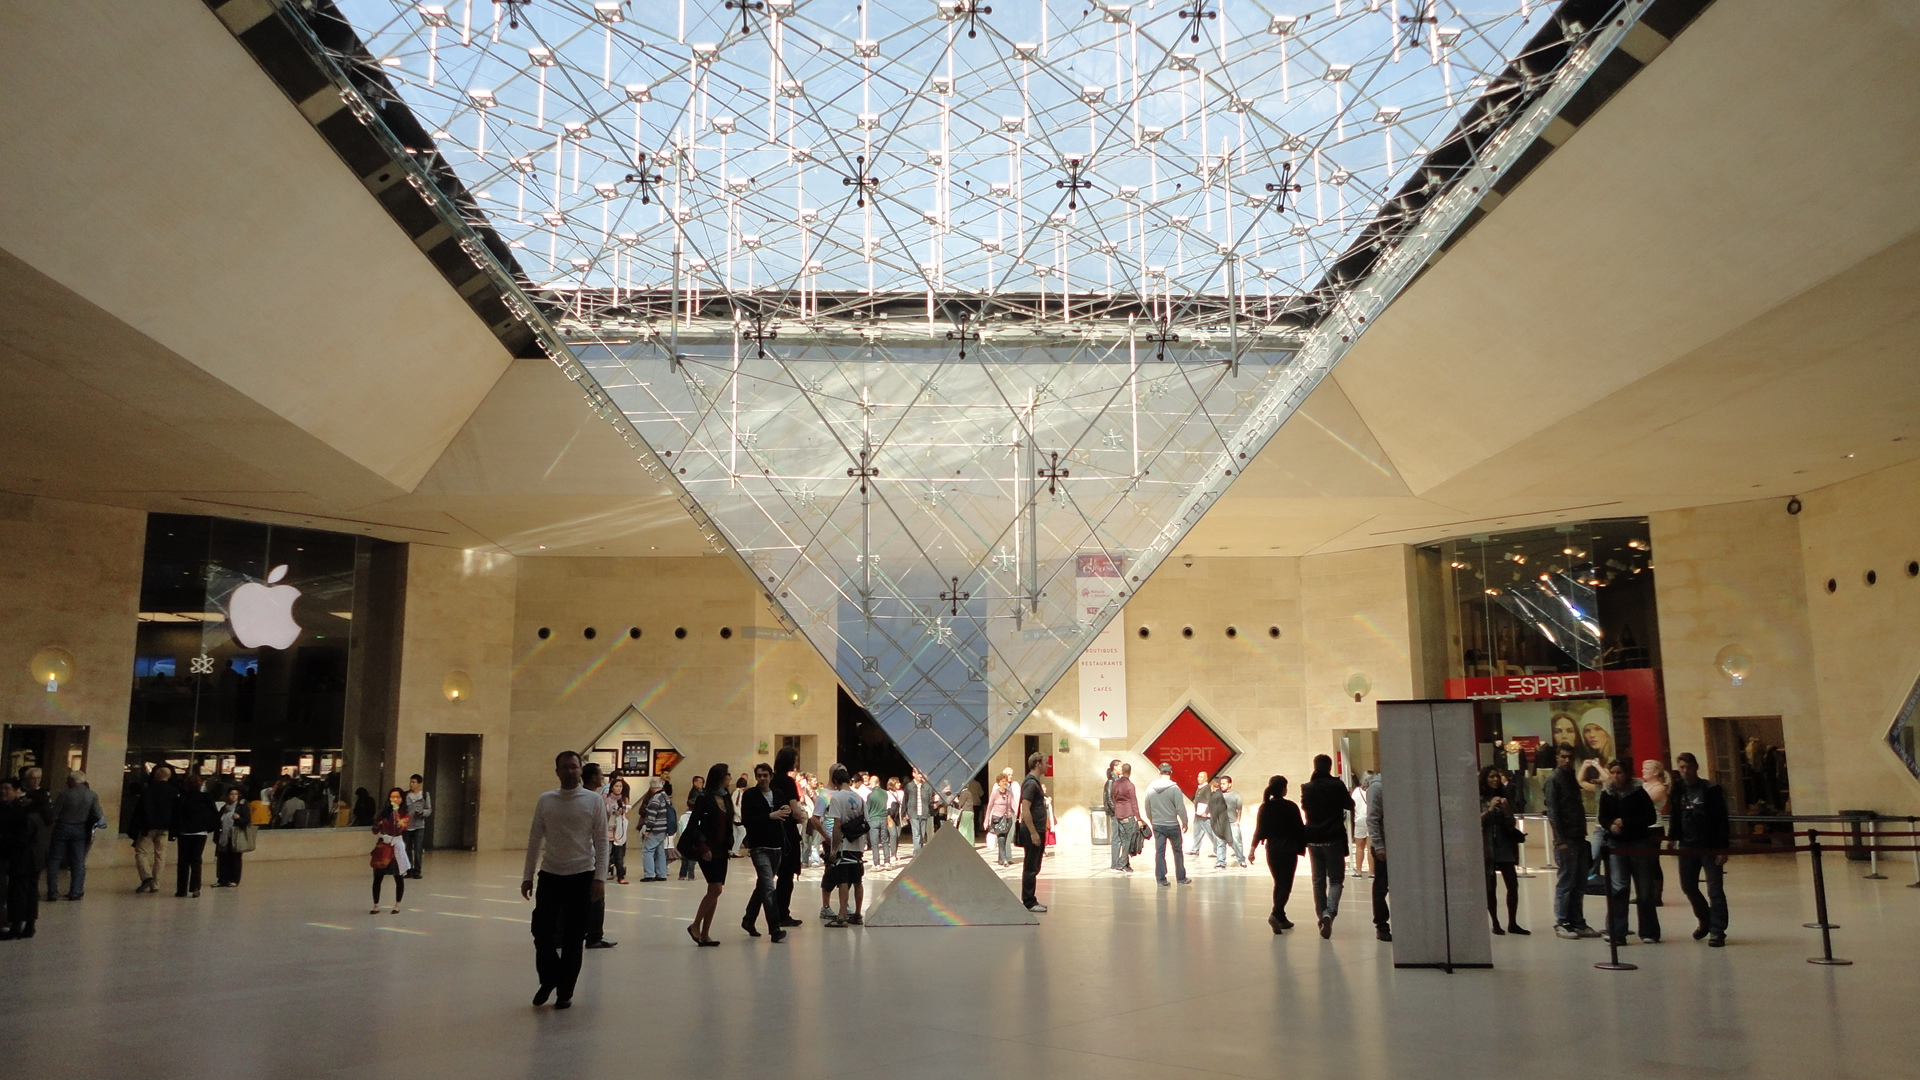 Inverse pyramid louvre museum by hassansagheer on deviantart for Le louvre interieur